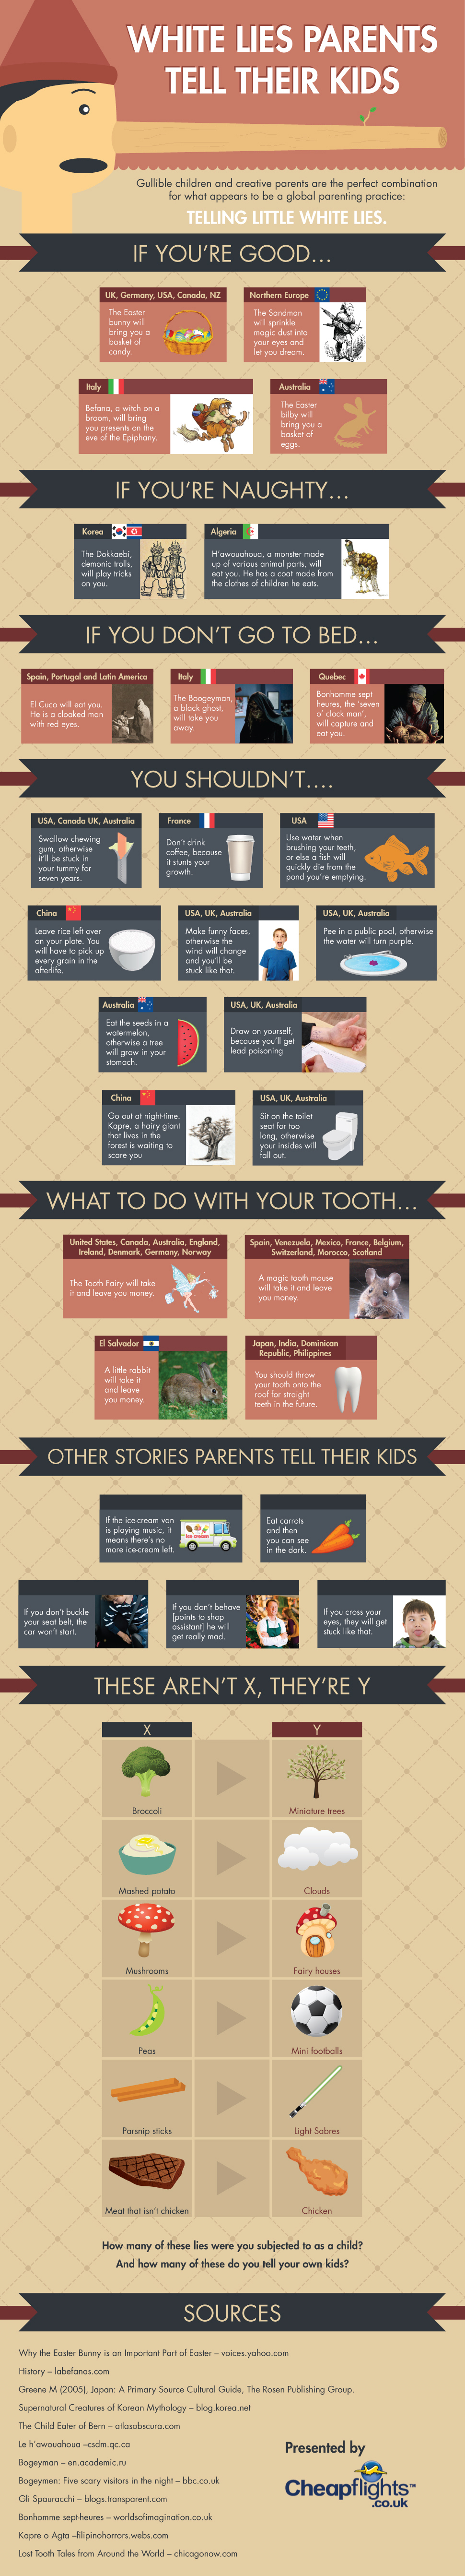 The Little White Lies That Parents Tell Their Kids